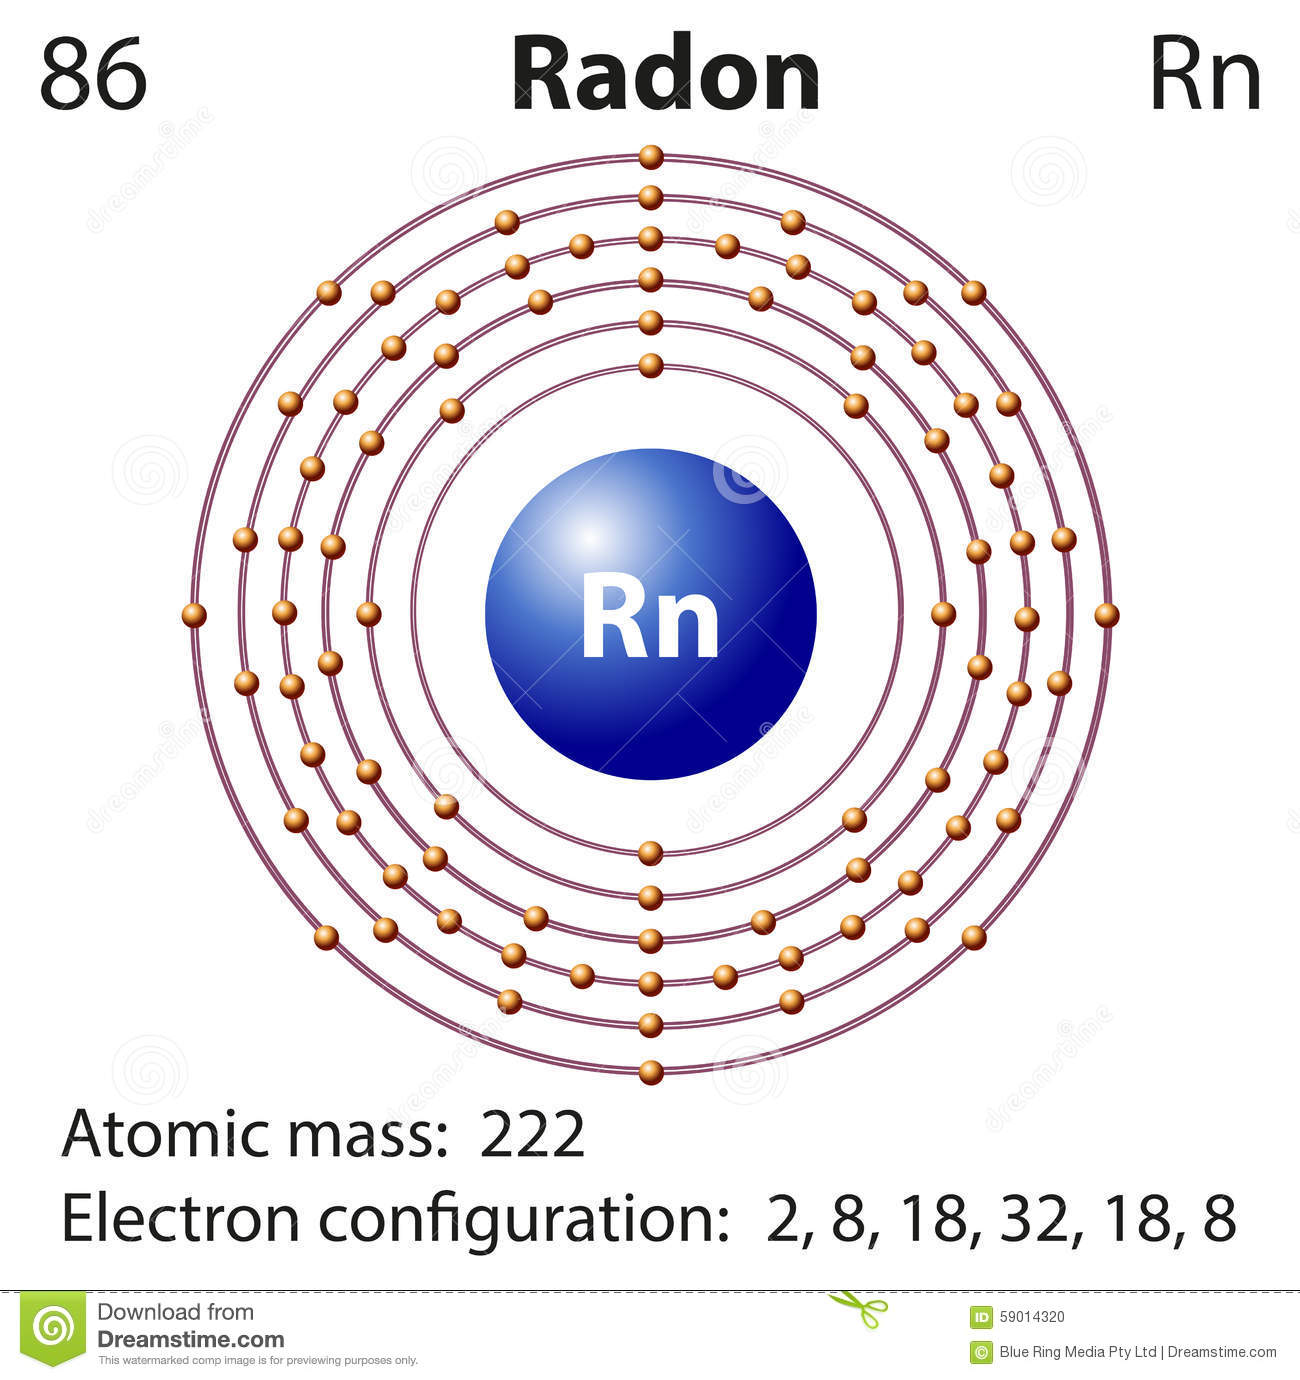 copper atom diagram wiring circuit breaker representation of the element radon royalty-free illustration | cartoondealer.com #59014320